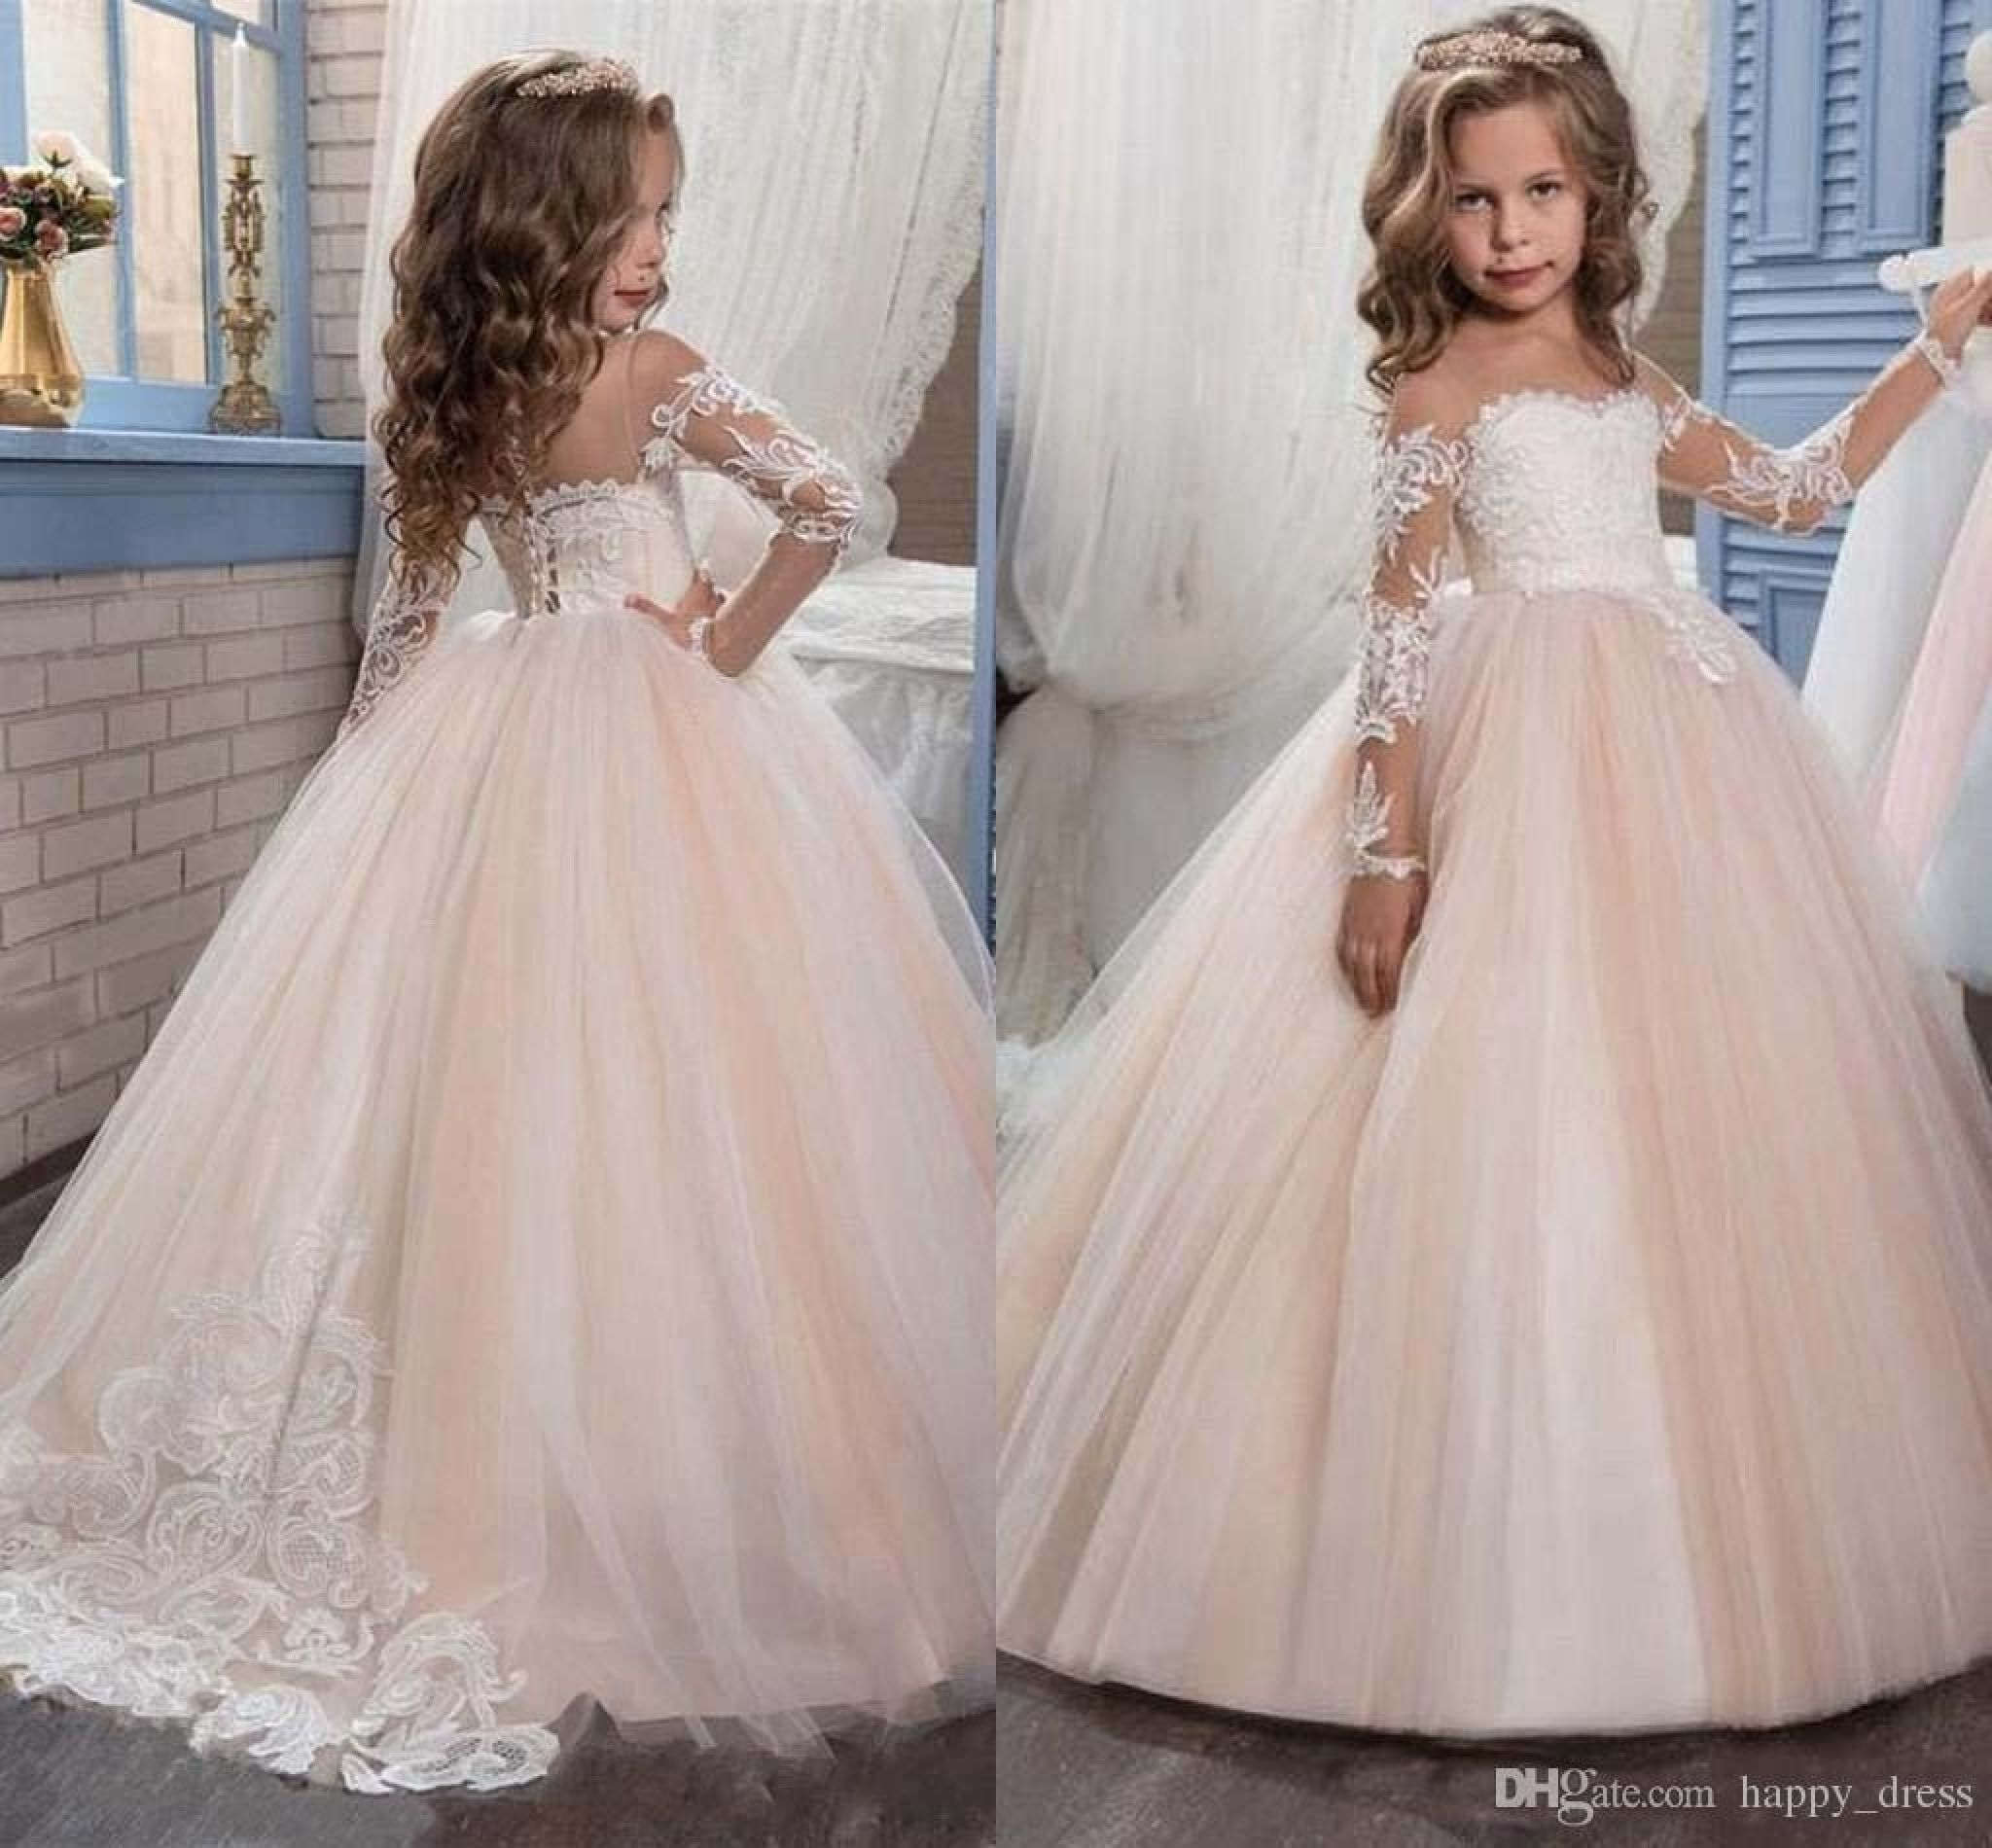 Kids dresses for a wedding best shapewear for wedding dress check